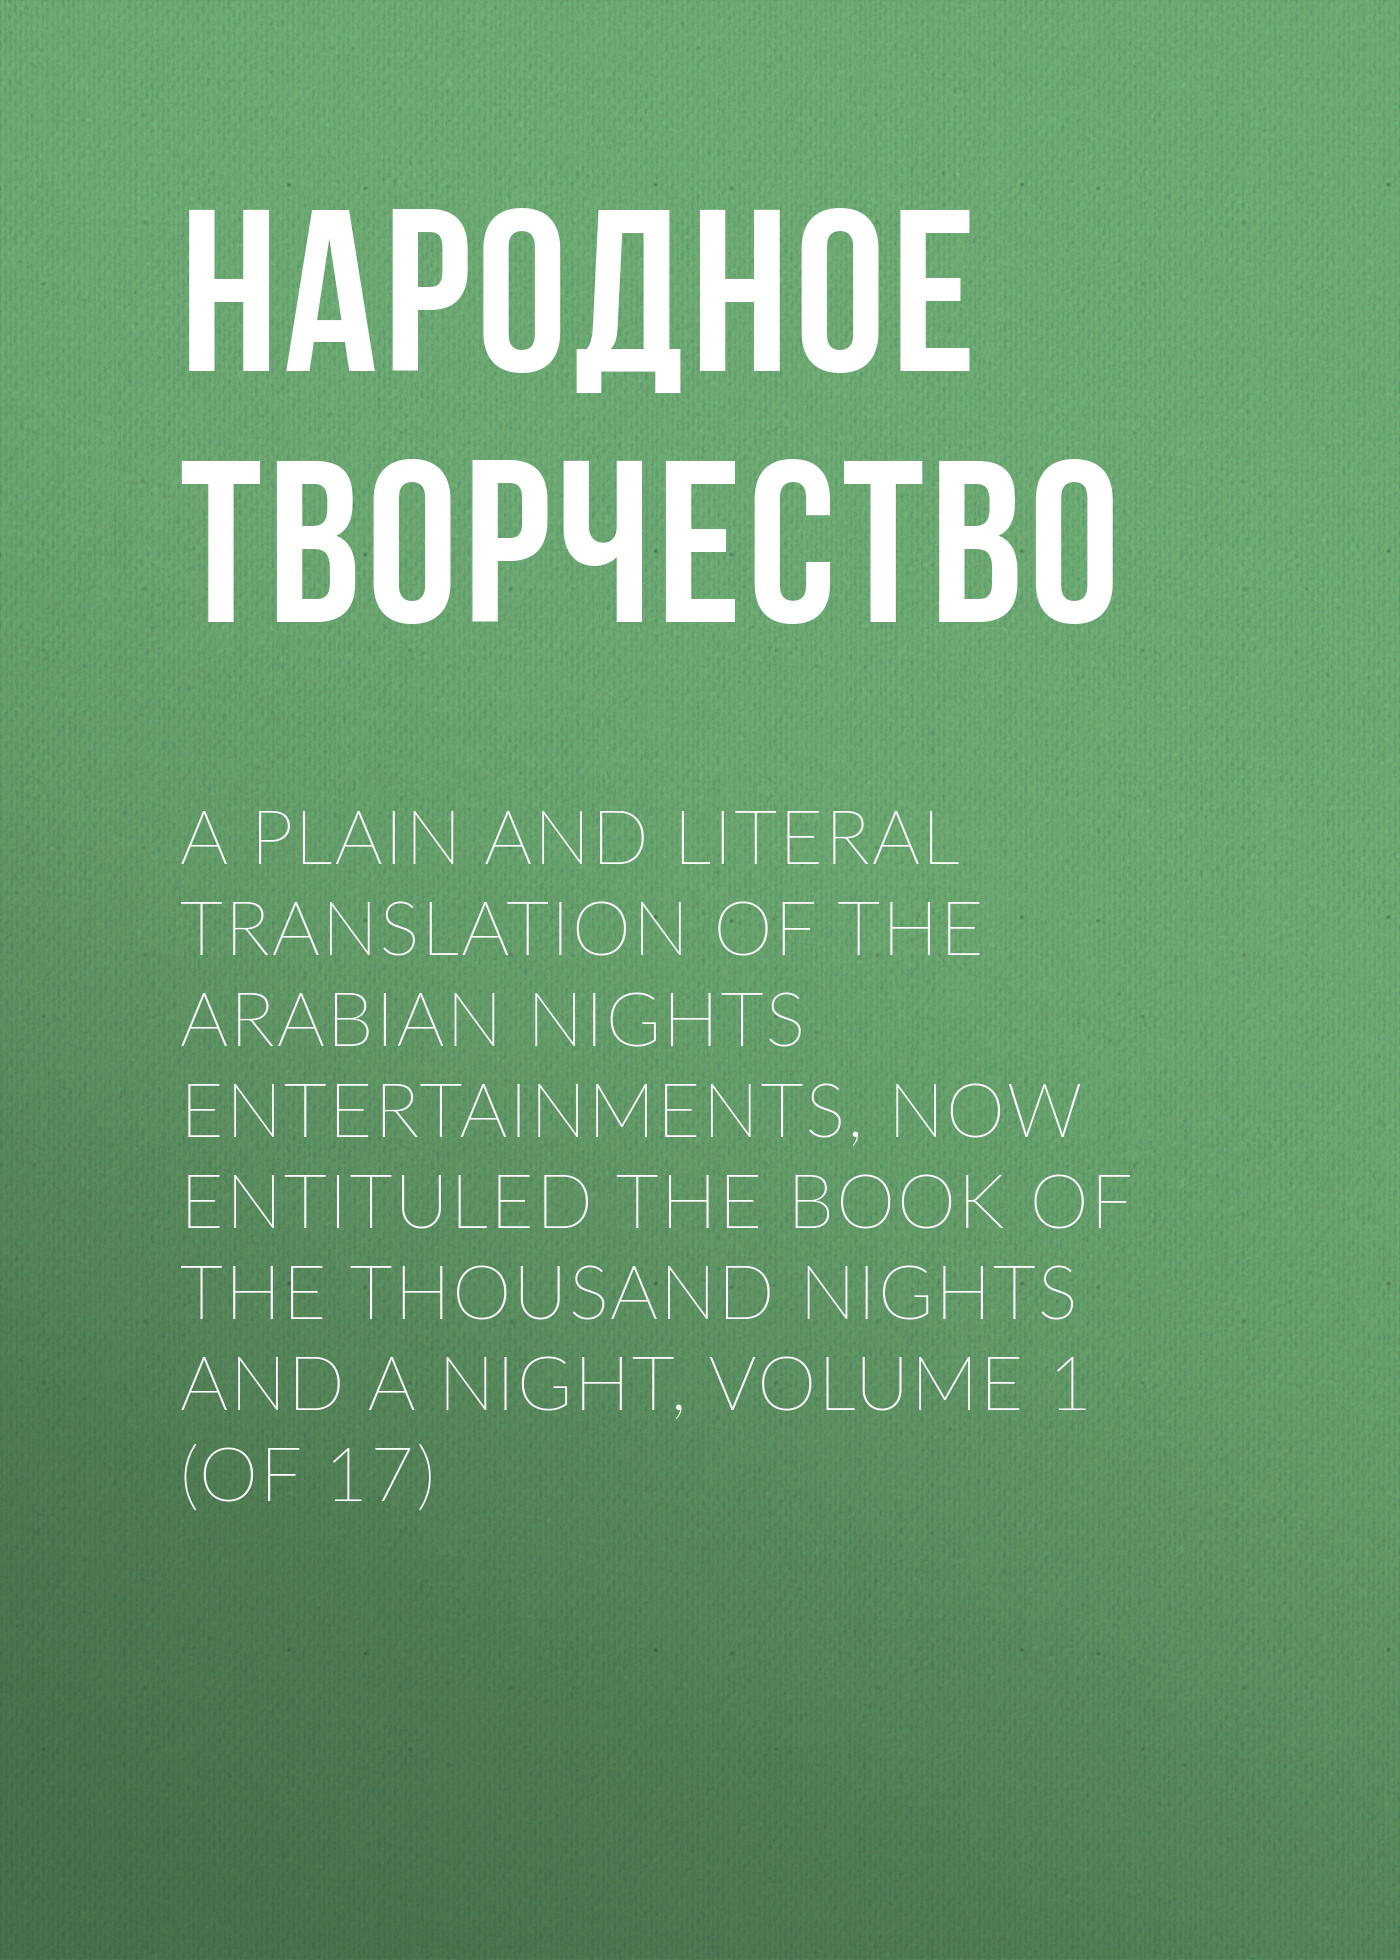 Народное творчество A plain and literal translation of the Arabian nights entertainments, now entituled The Book of the Thousand Nights and a Night, Volume 1 (of 17) the night angel trilogy book 1 the way of shadows